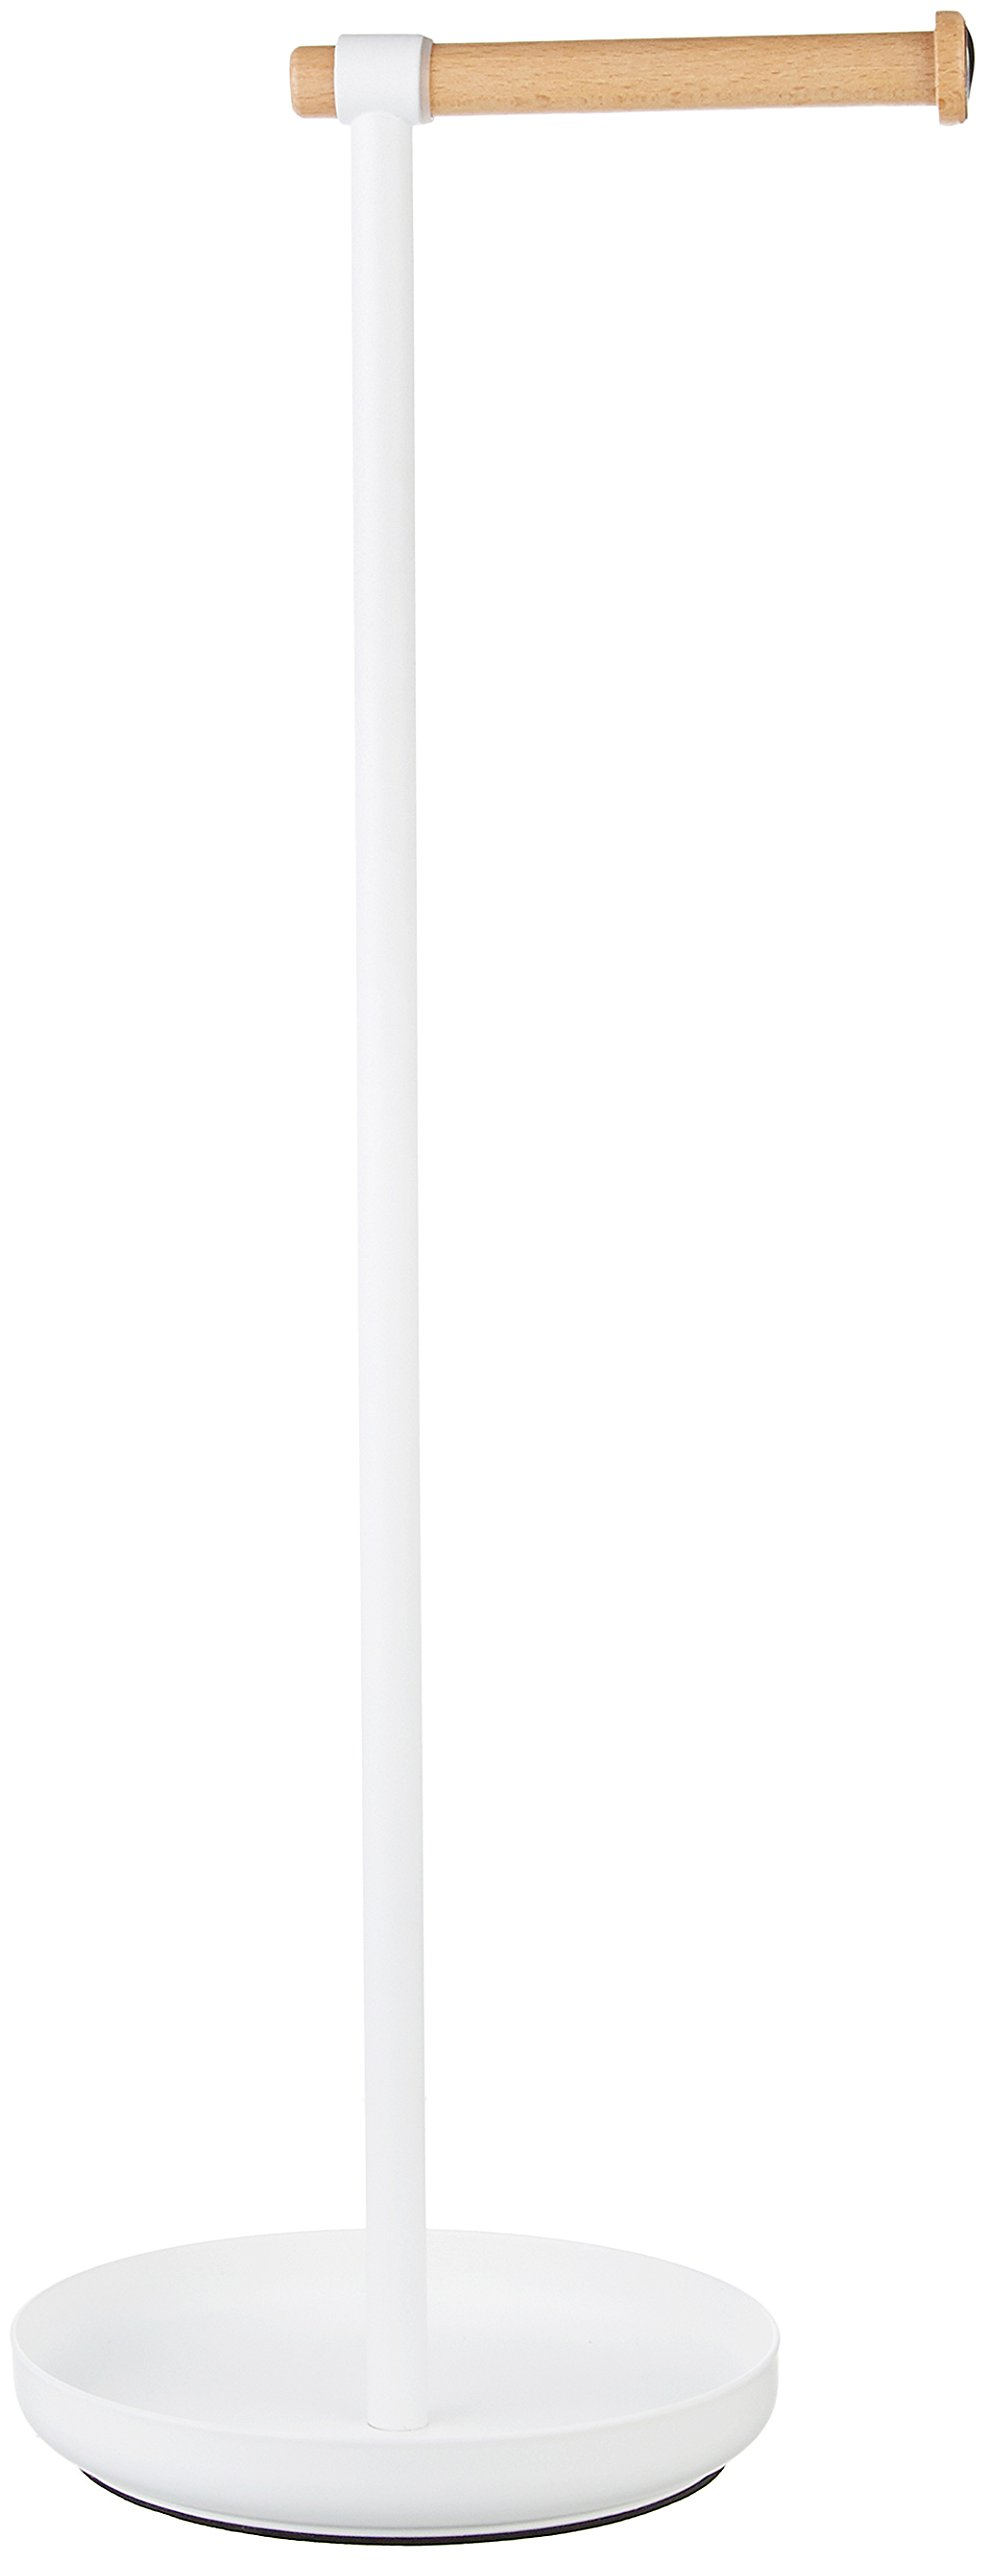 AmazonBasics Toilet Paper Stand with Reserve - White/Beech